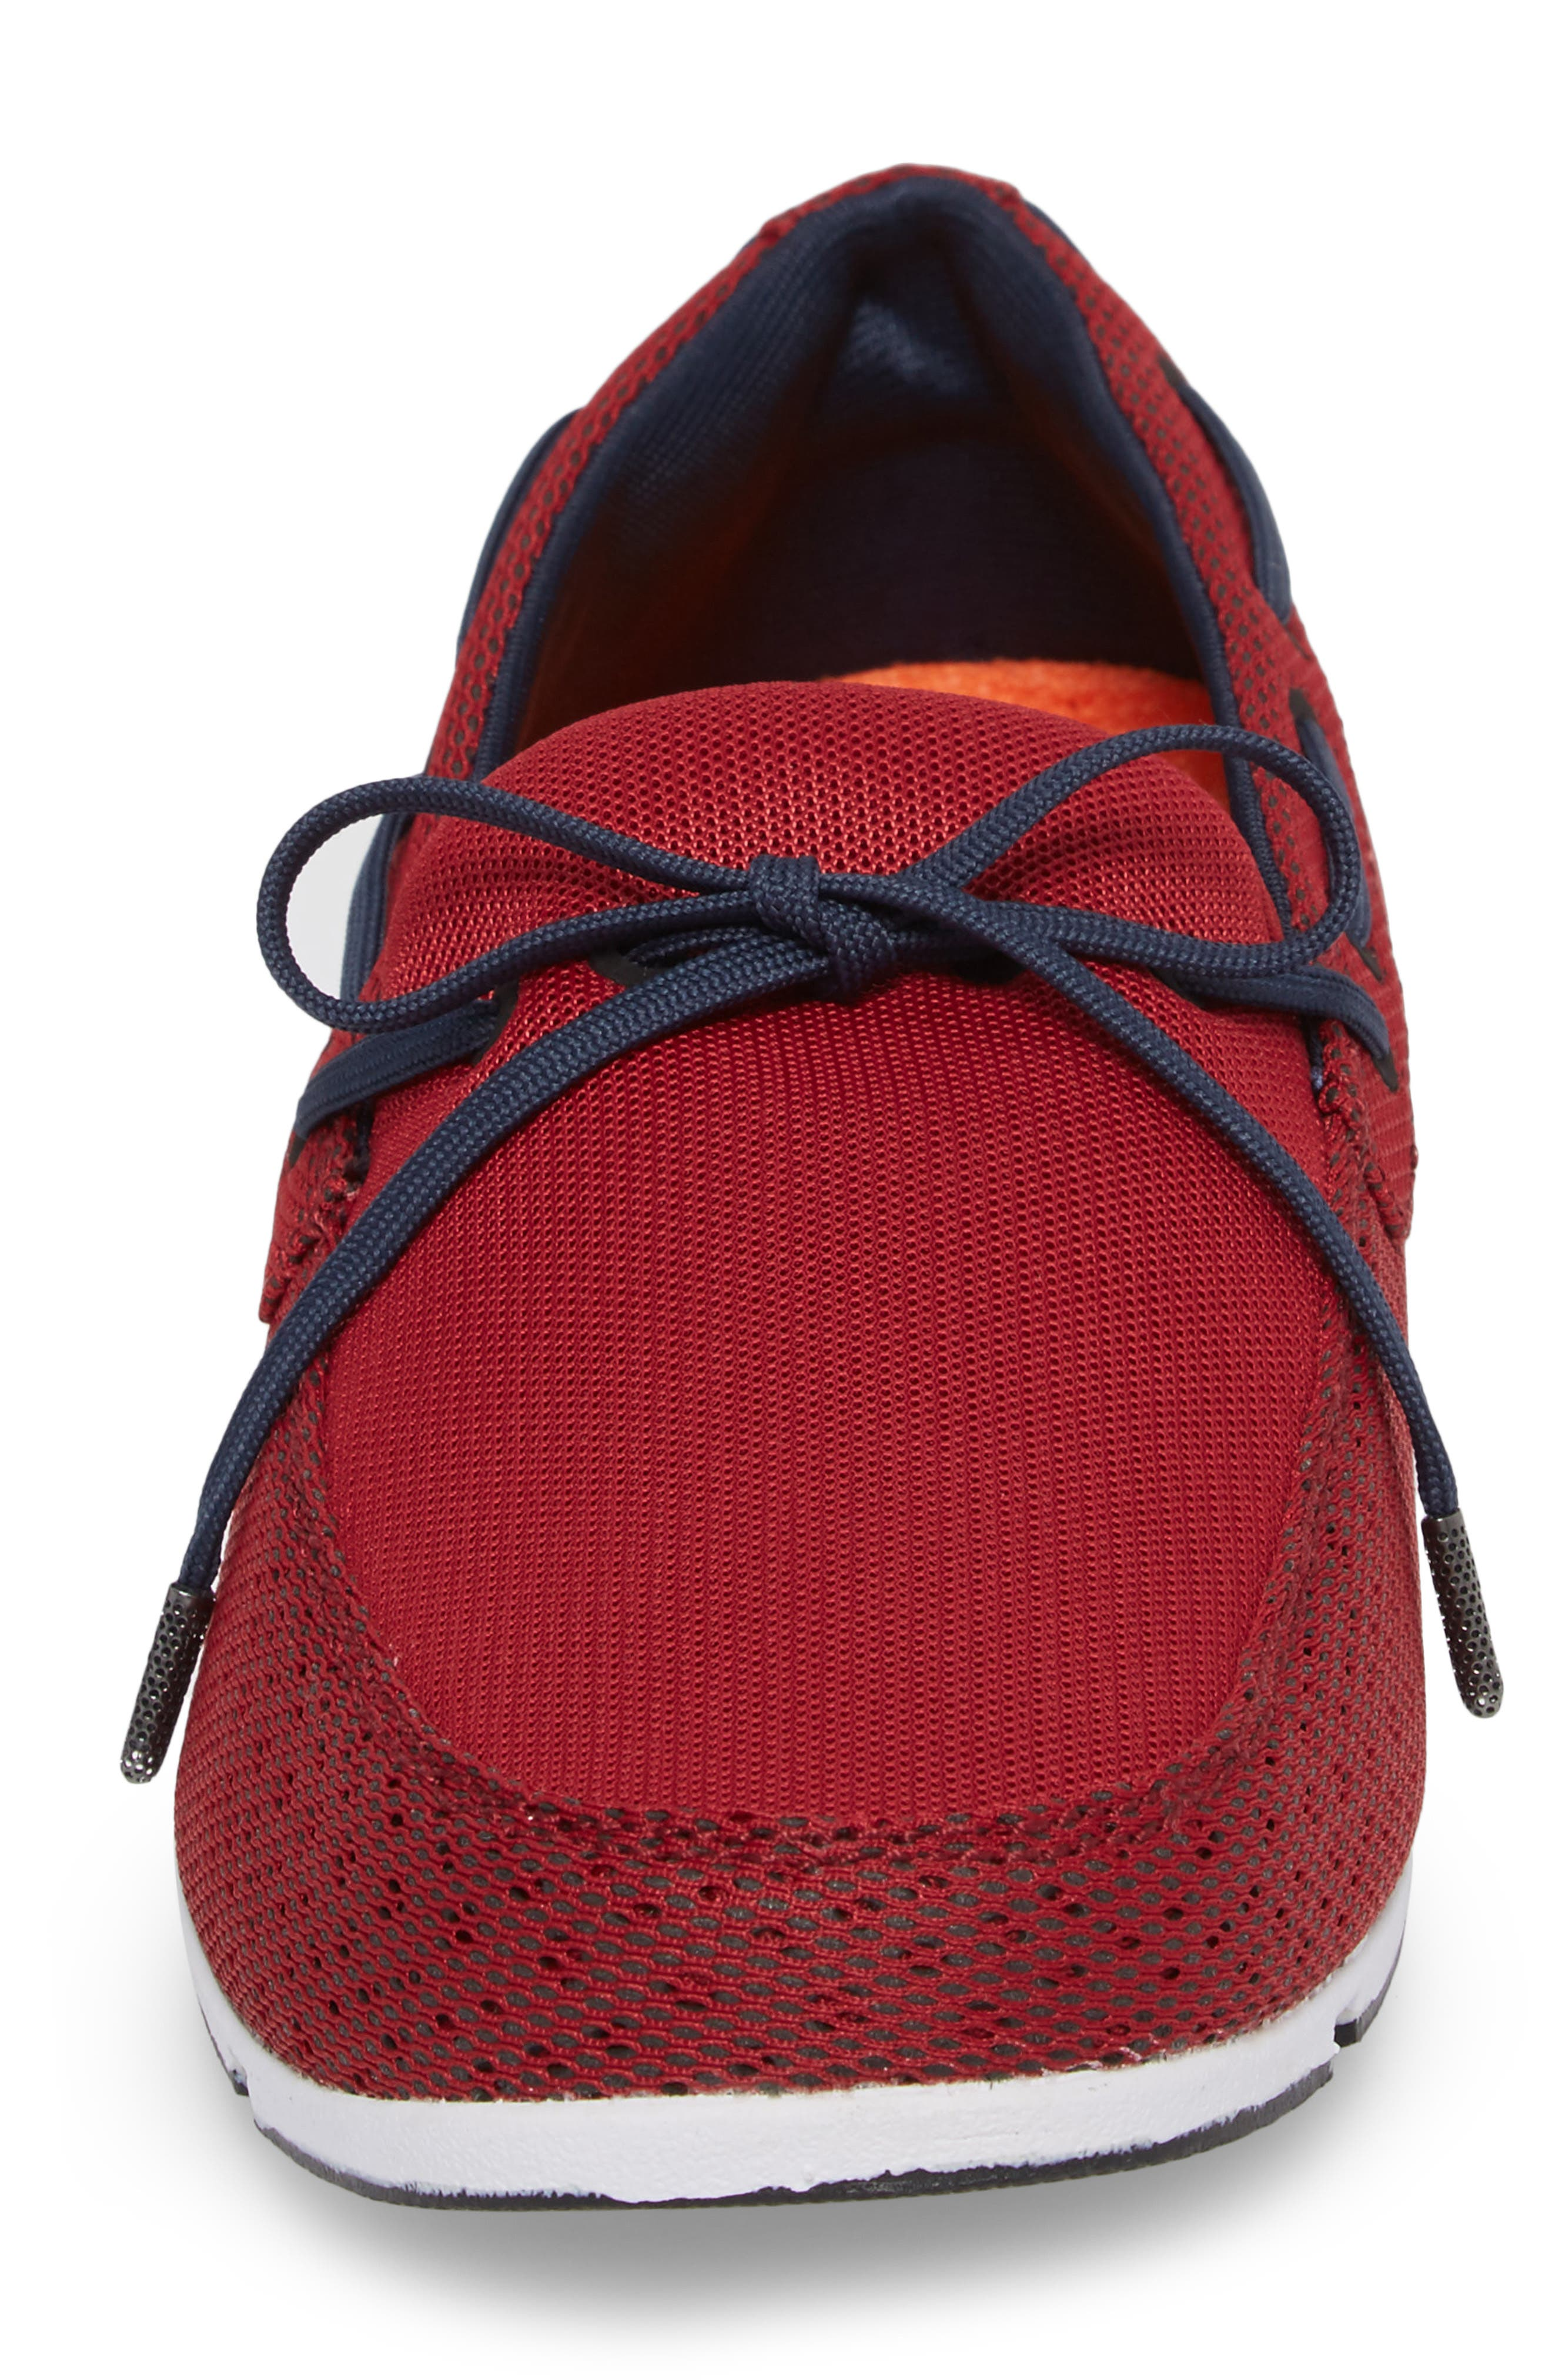 Breeze Loafer,                             Alternate thumbnail 4, color,                             Deep Red/ Navy/ White